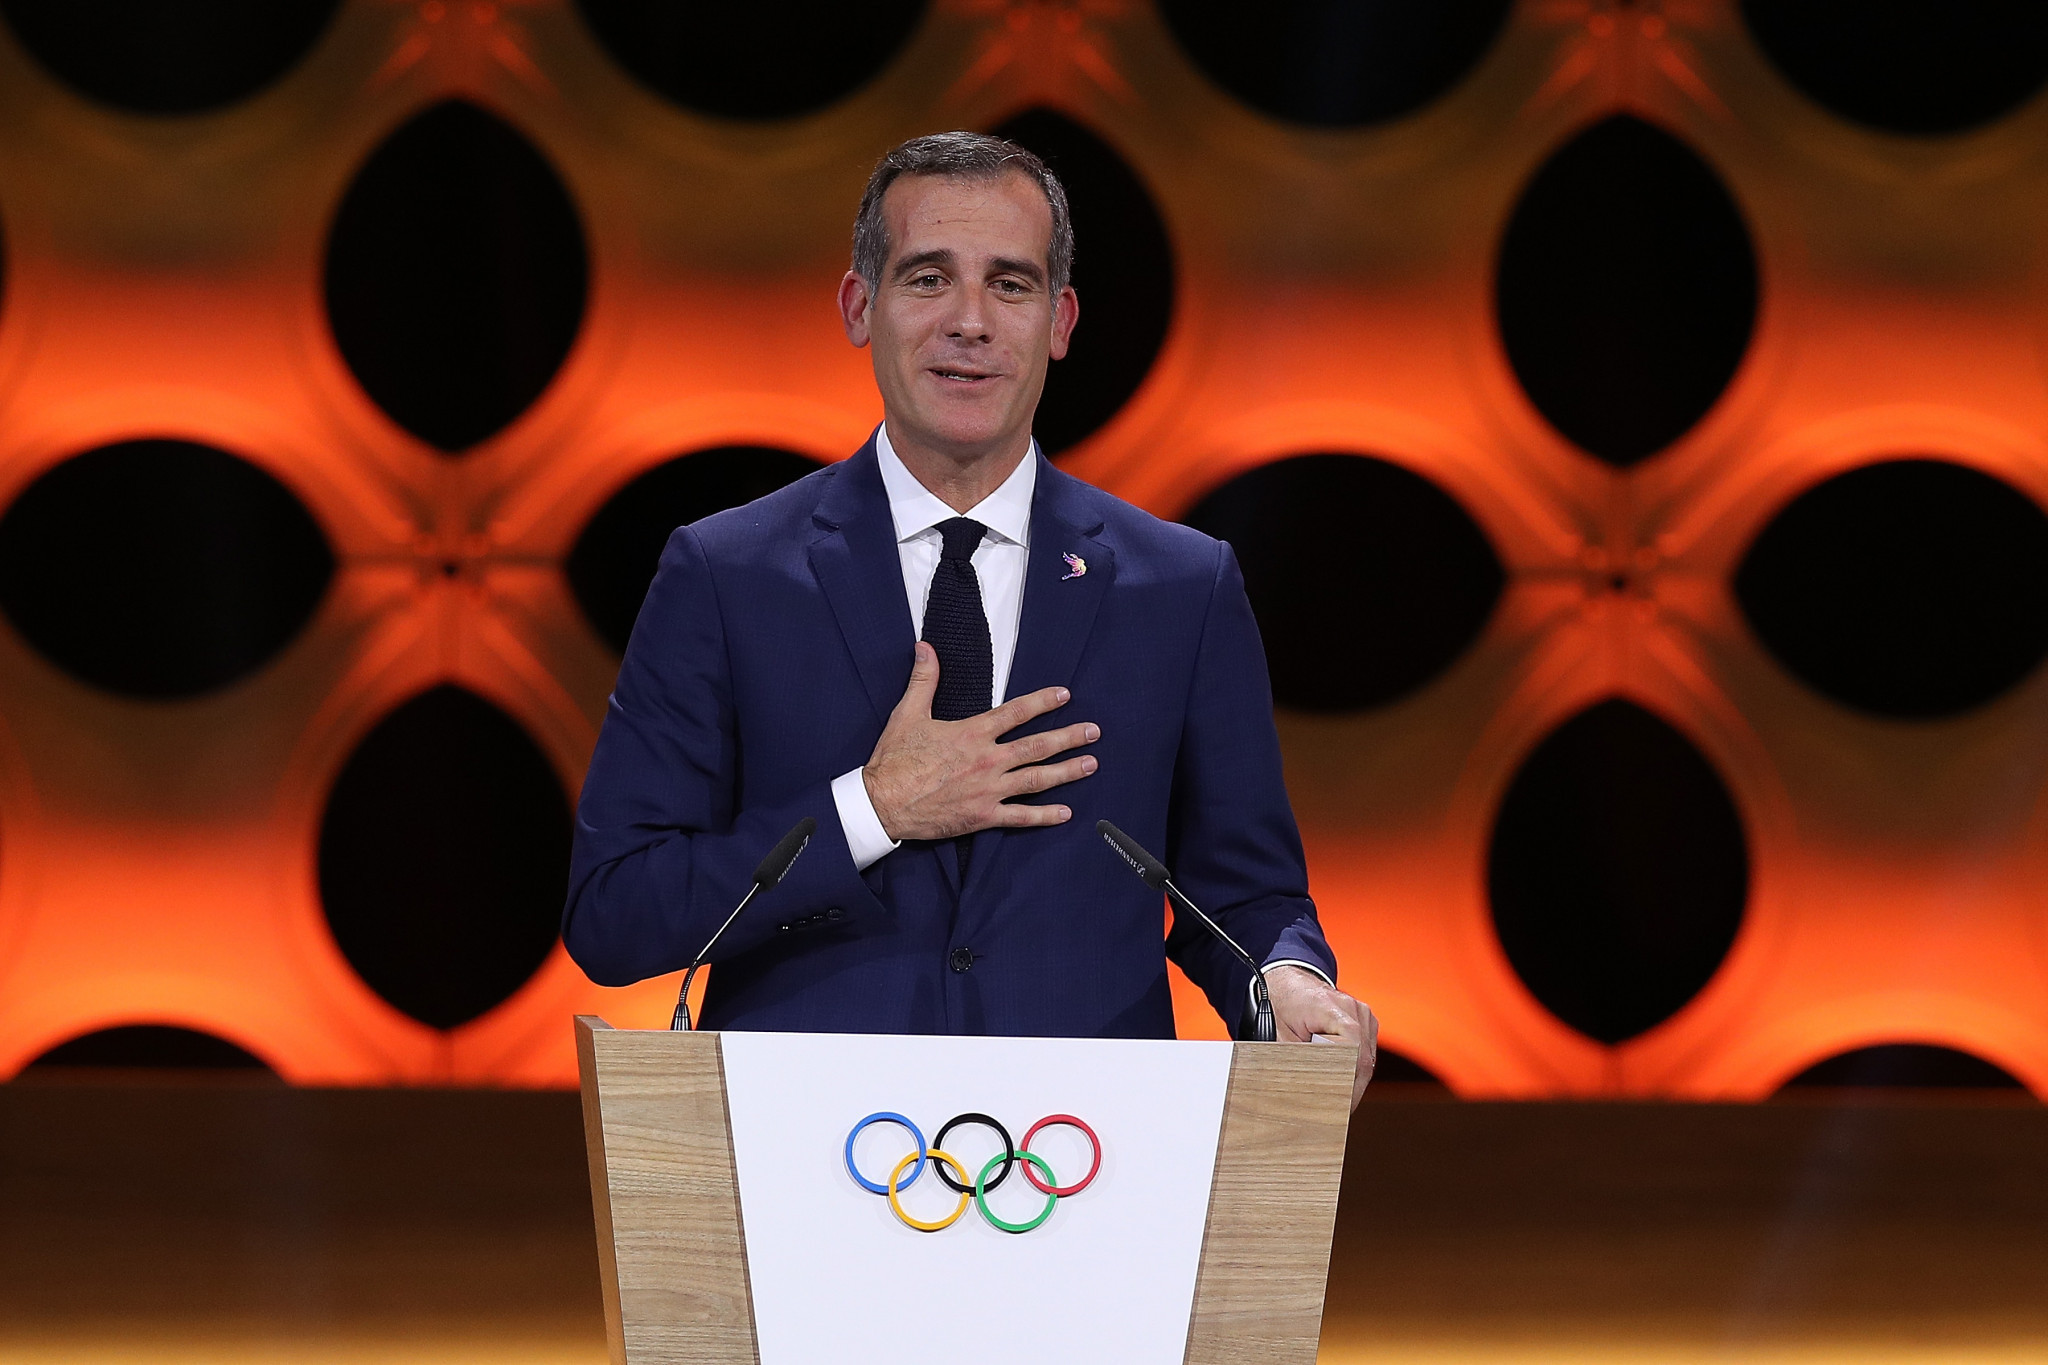 Los Angeles Mayor Eric Garcetti has had the go-ahead to sign a MoU to establish the California Olympic and Paralympic Safety Command ©Getty Images